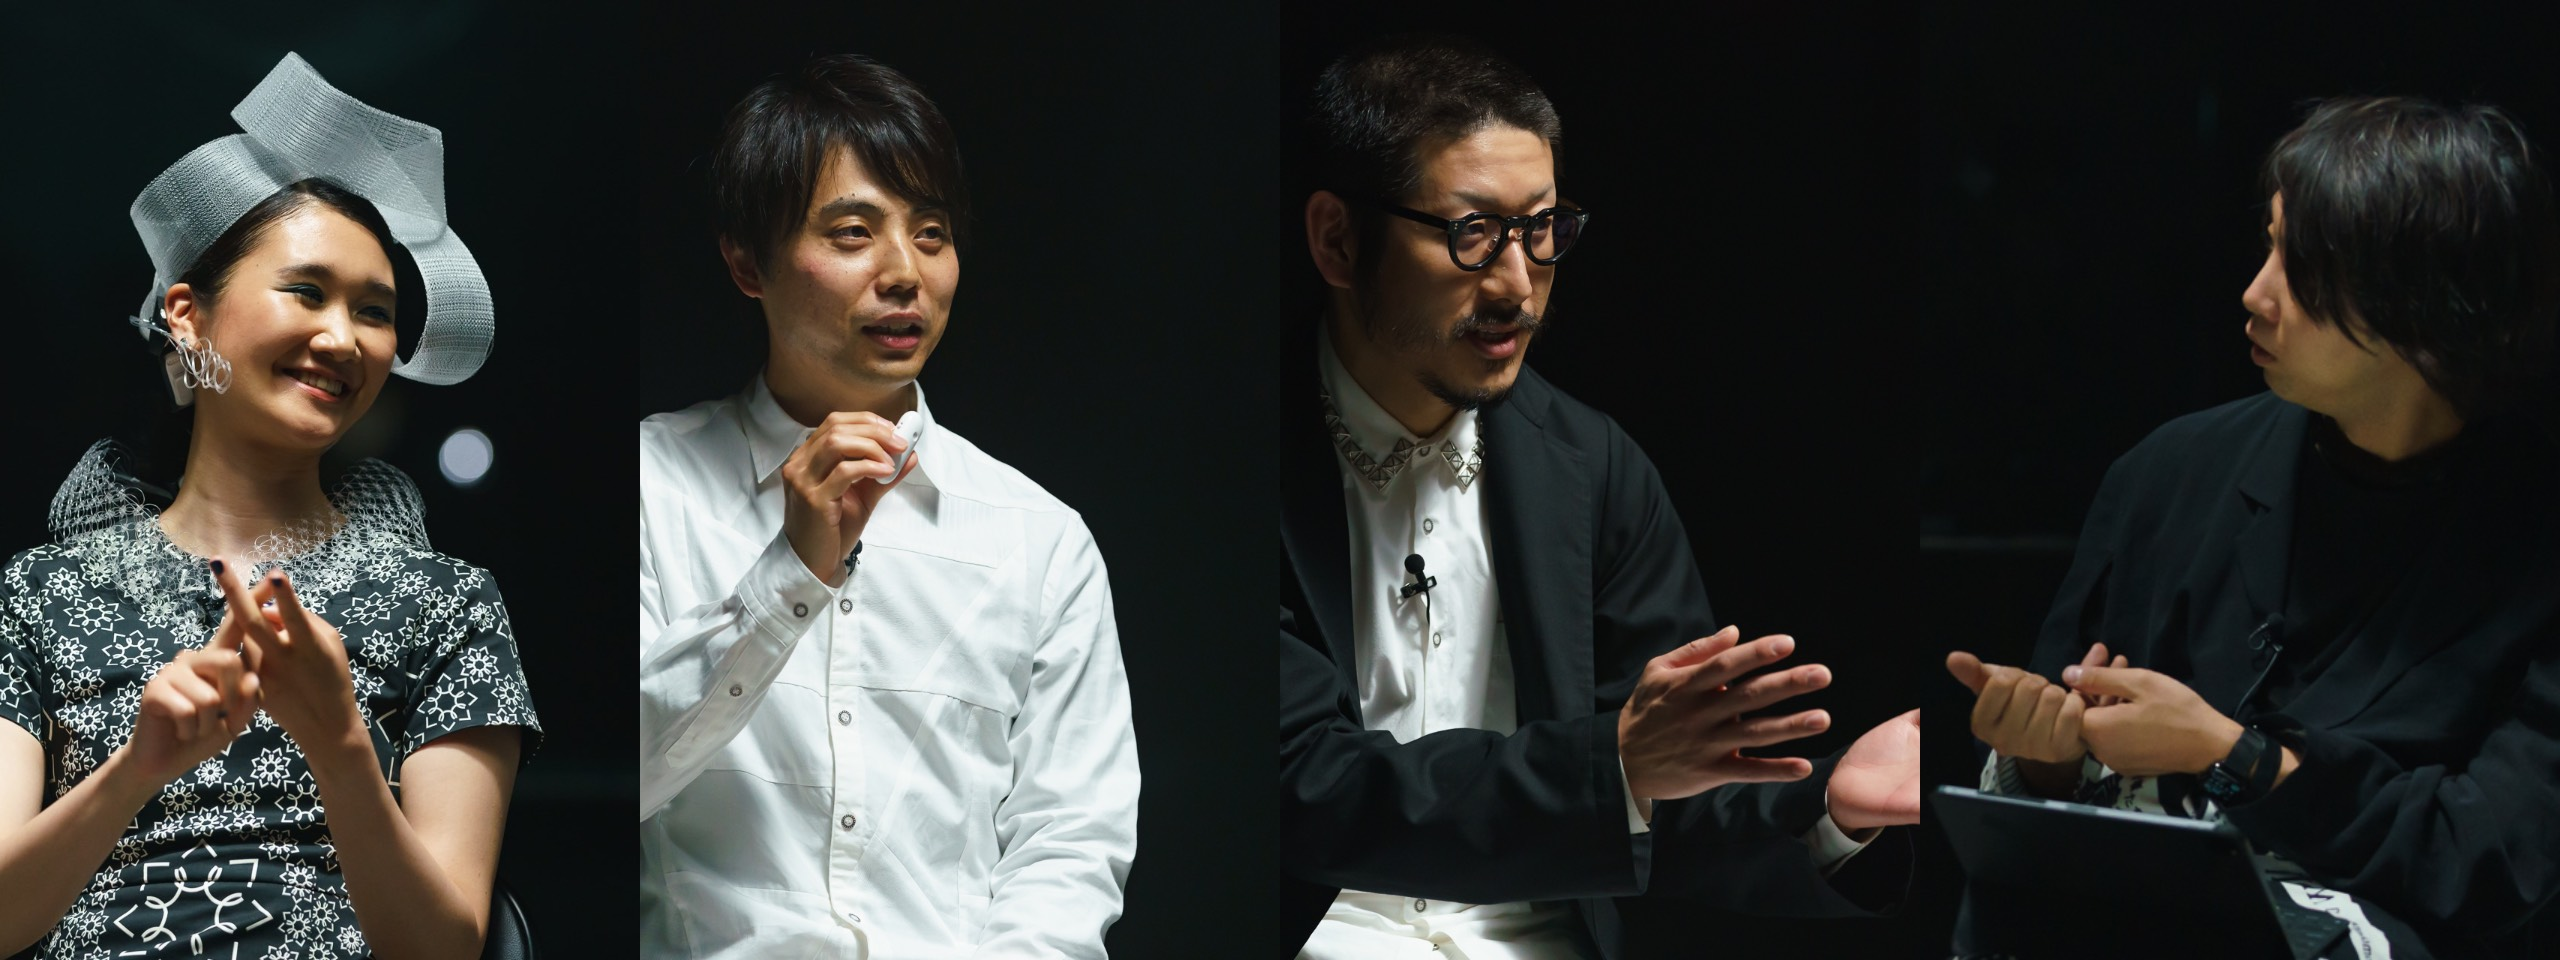 Backstage interview 2 casts